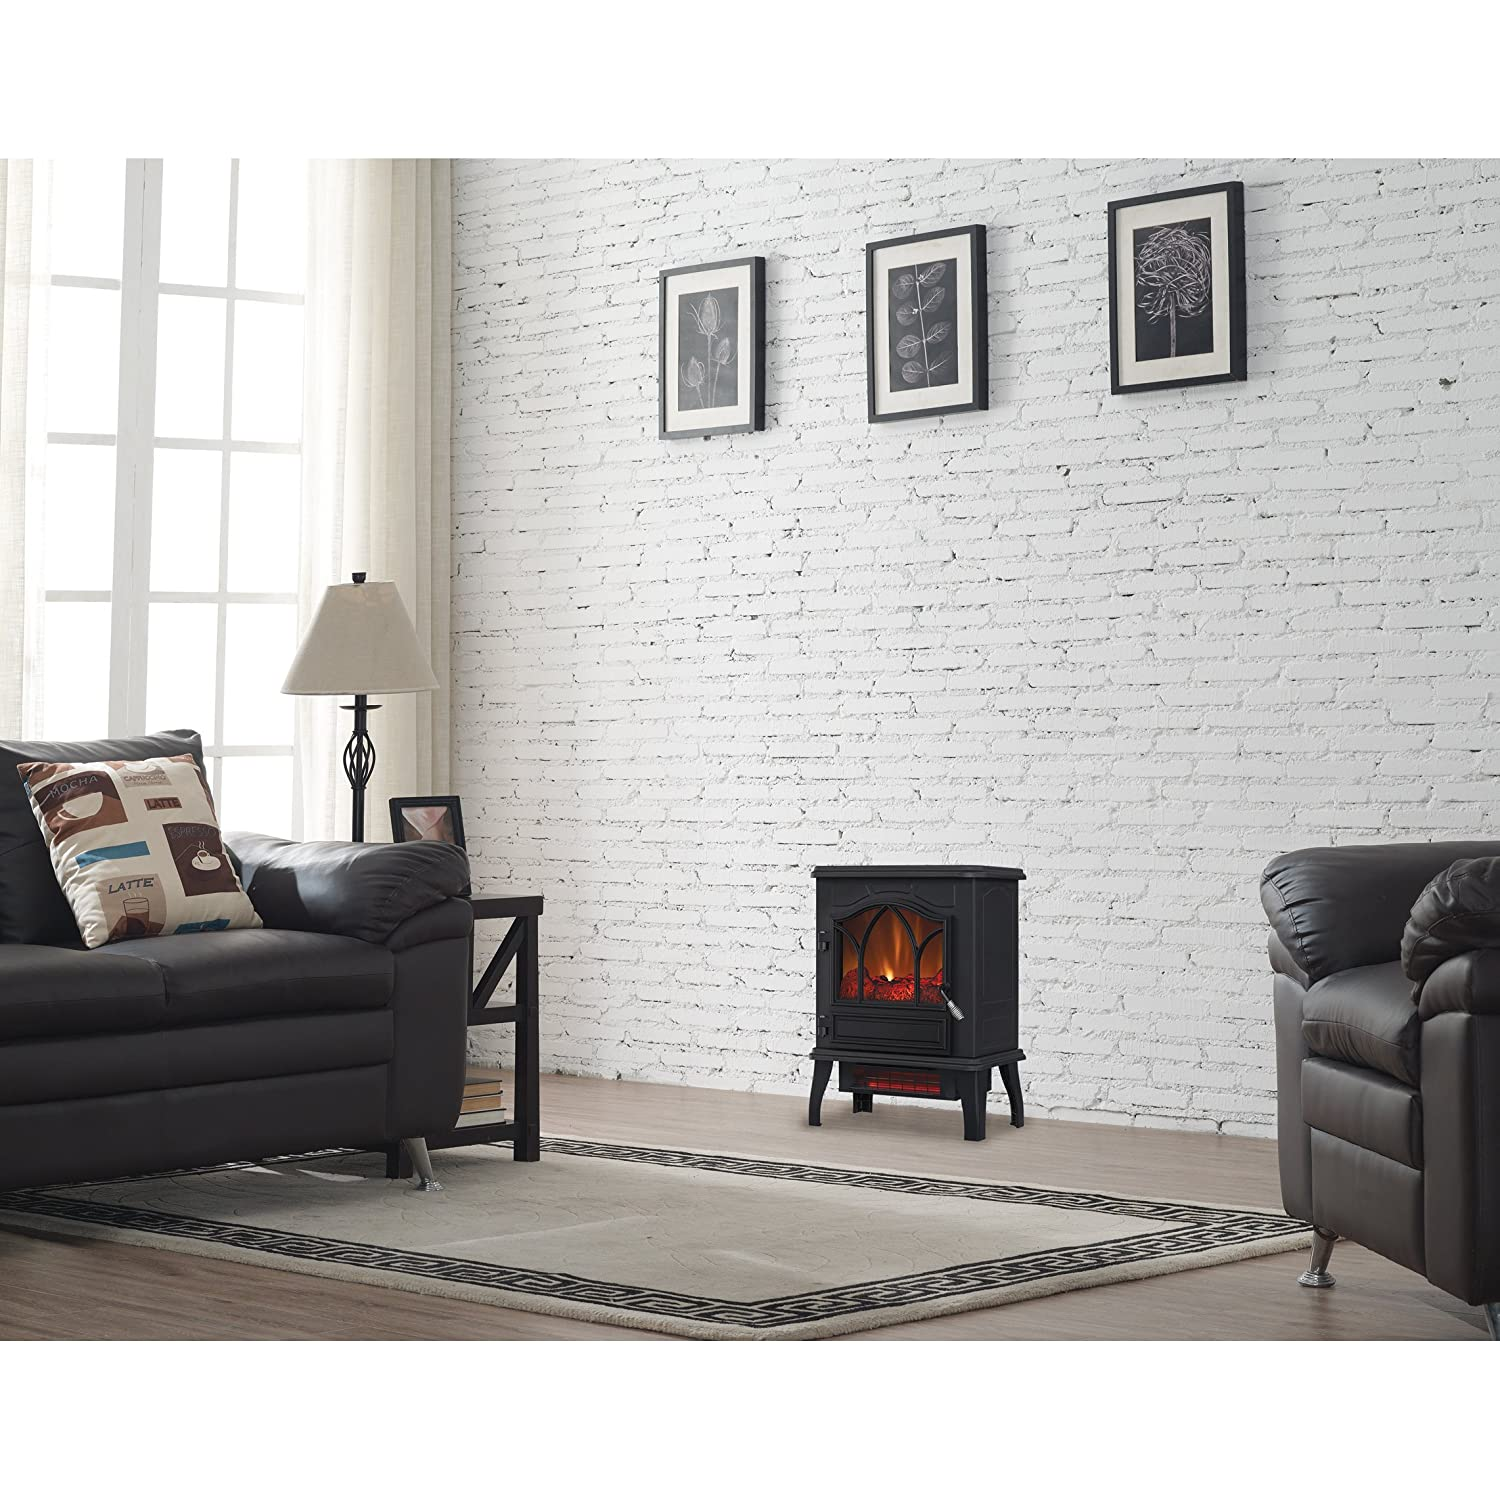 Buy Electric Quartz Infrared Fireplace Stove Heater with Adjustable Thermostat: Space Heaters - Amazon.com ? FREE DELIVERY possible on eligible purchases